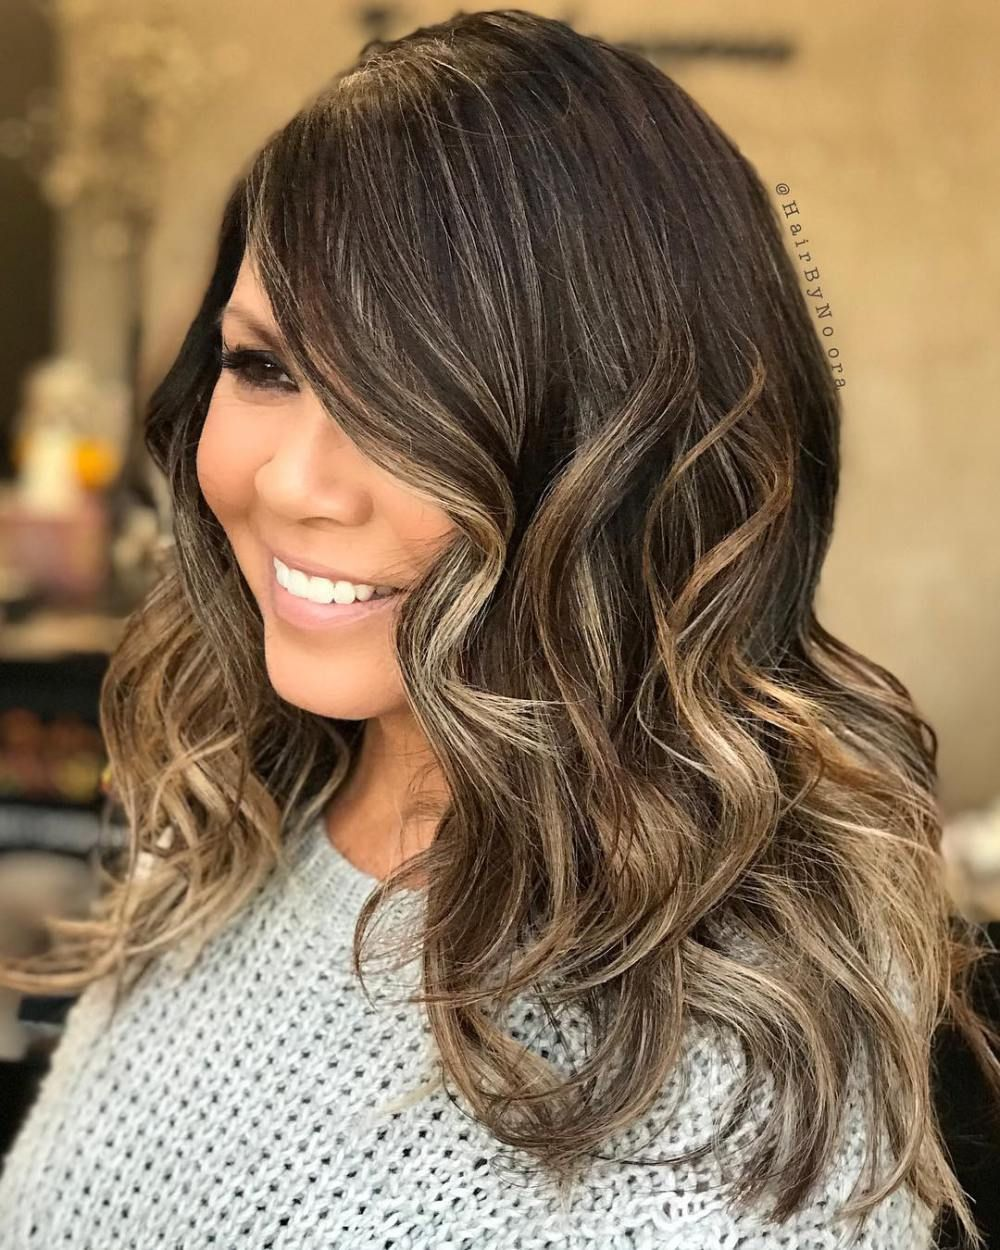 Wavy Long Hairstyle For Round Faces   Easy hairstyles for ...